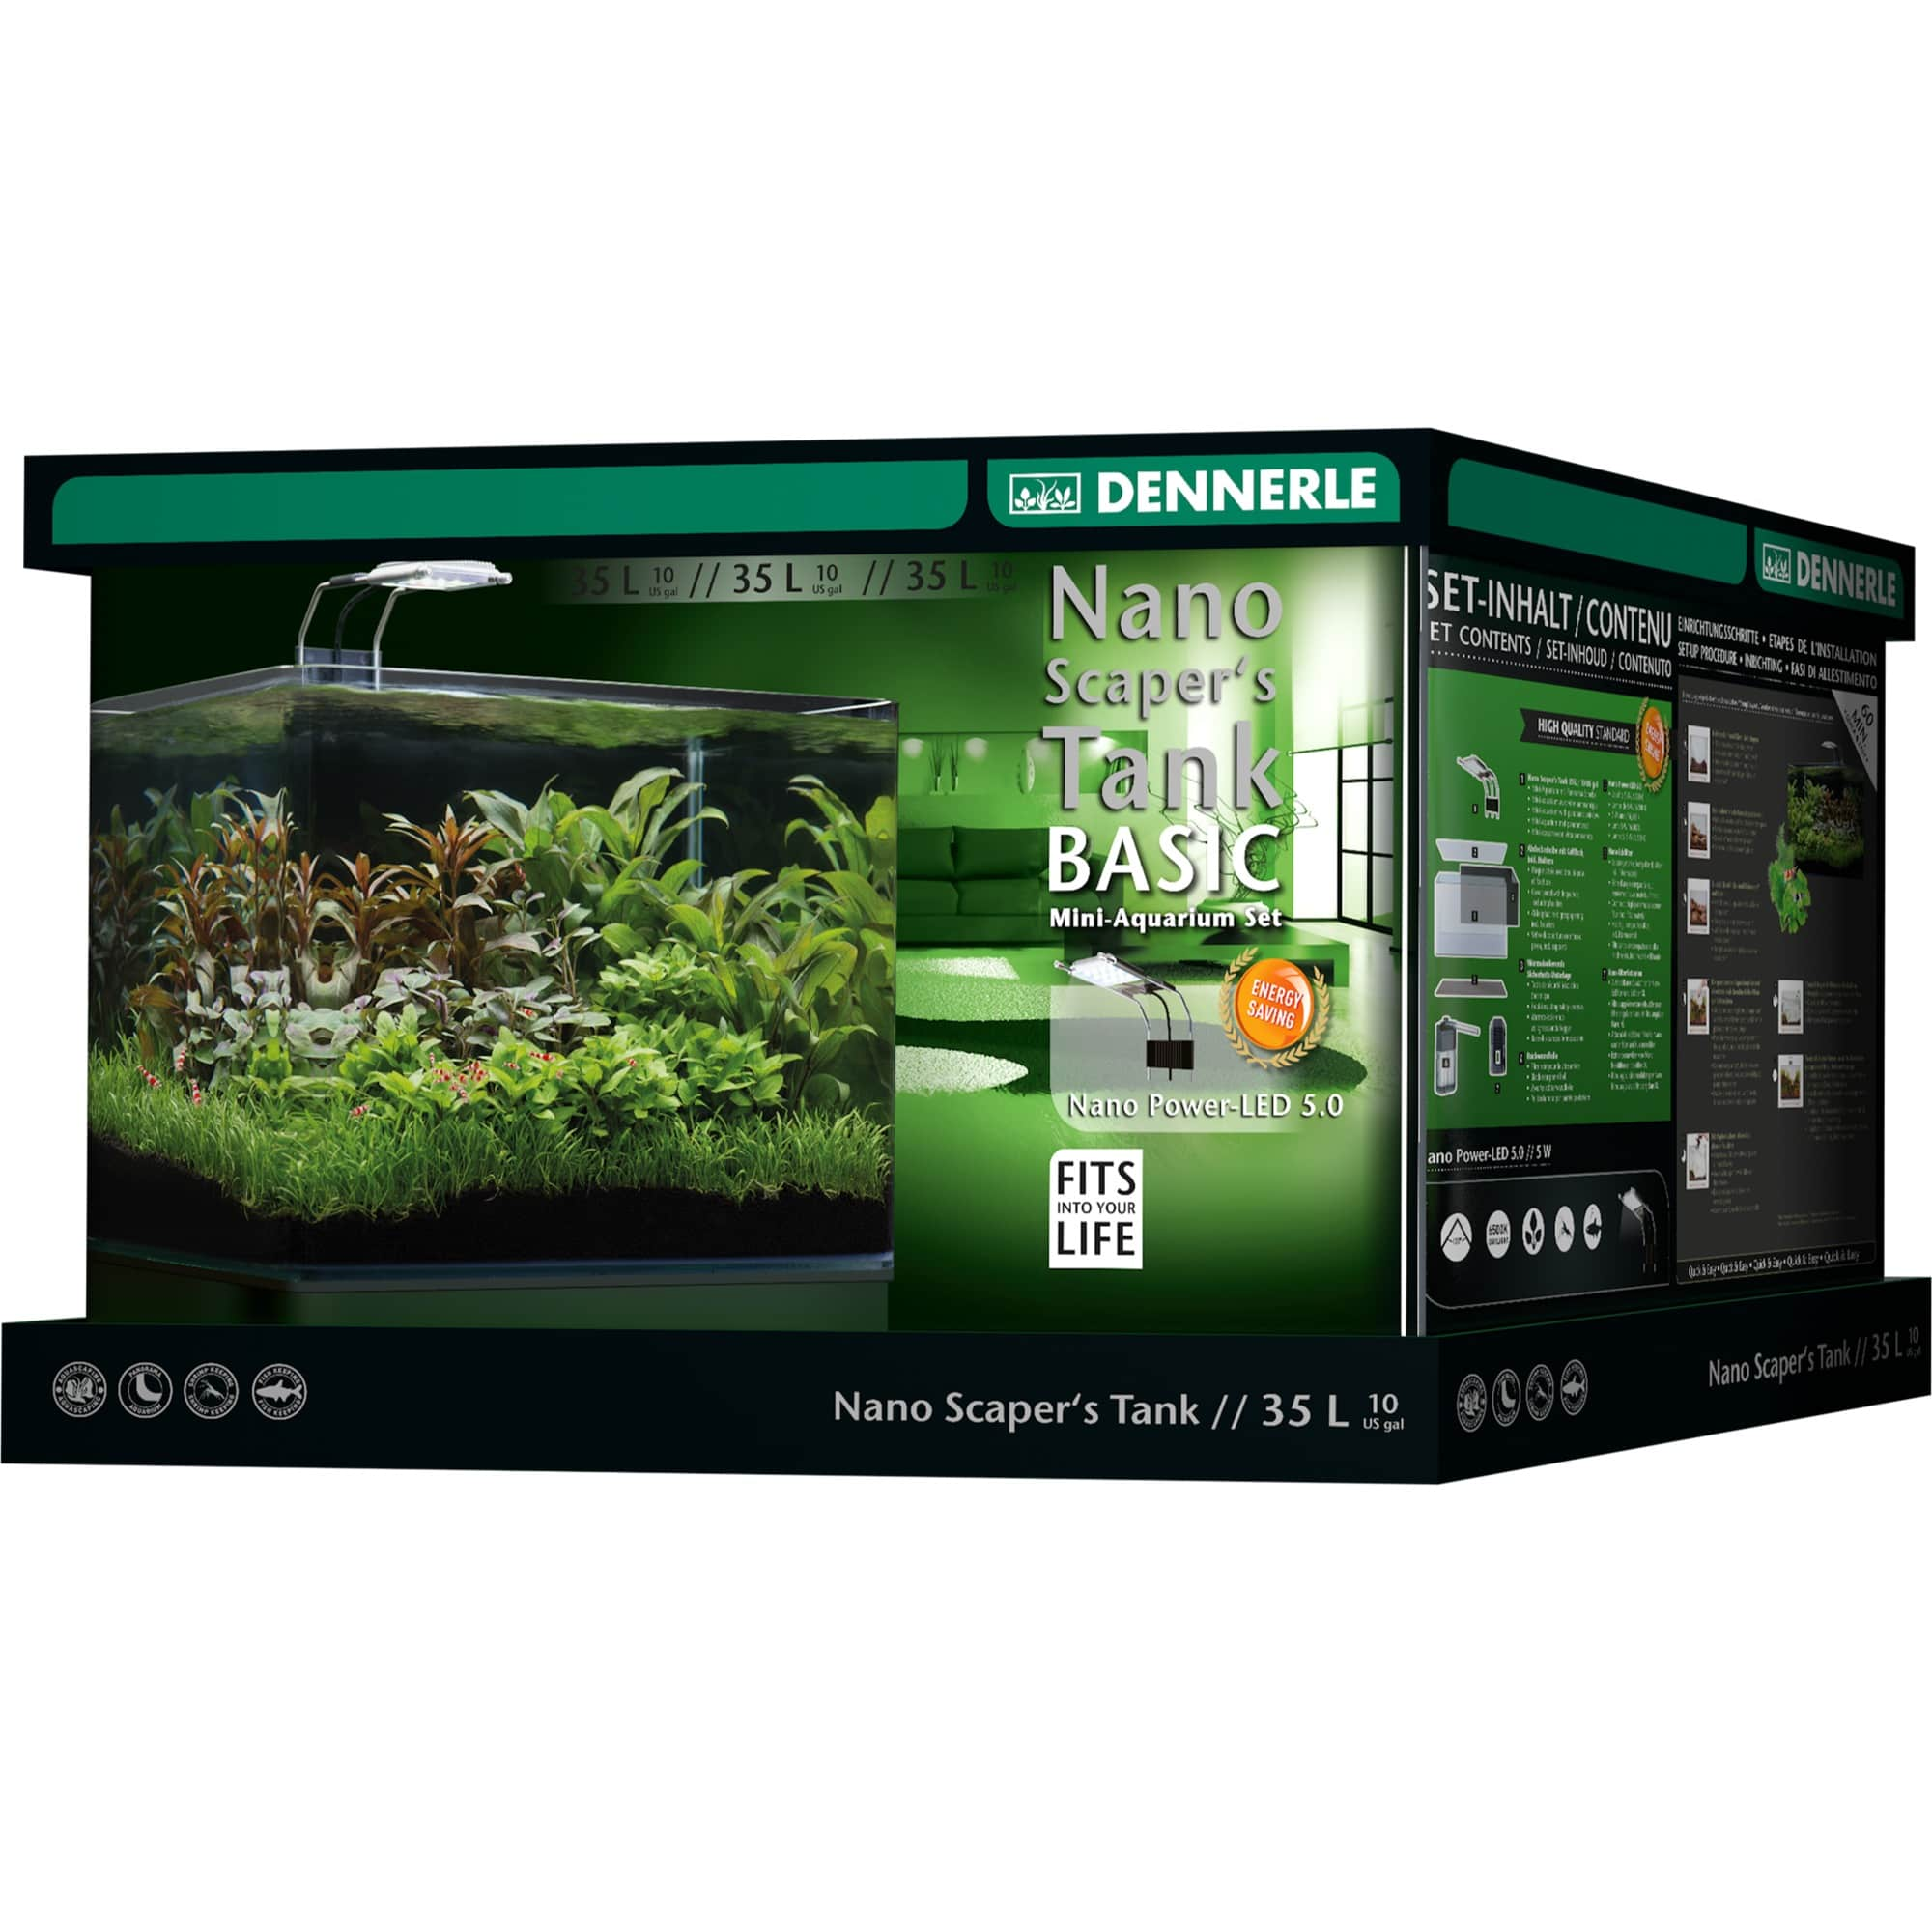 DENNERLE Nano Scaper\'s Tank Basic 35 L nano-aquarium 40 x 32 x 28 cm avec filtration et éclairage Power LED 5.0